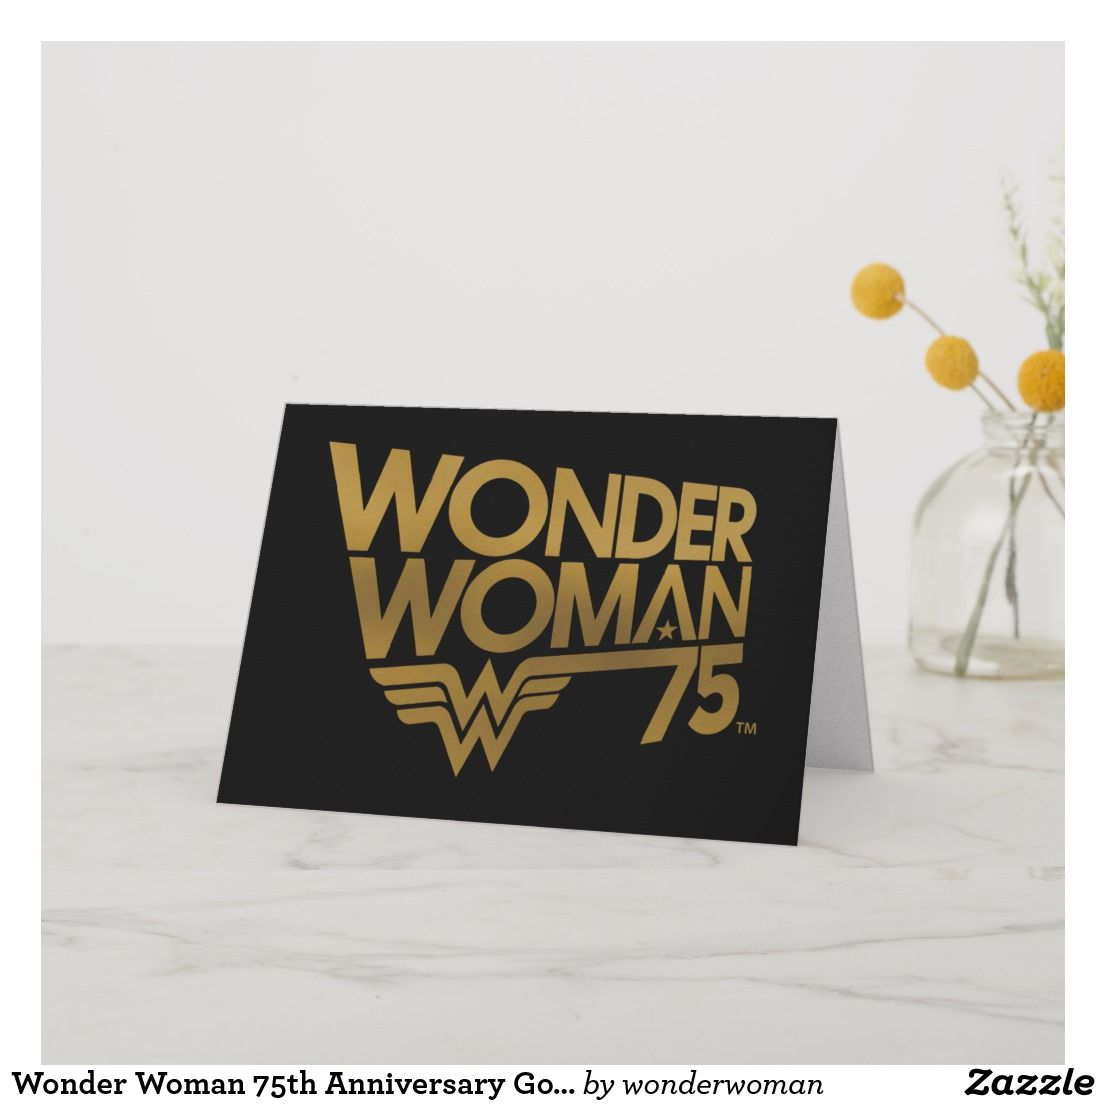 While Supplies Last Grab These Popular Classic Wonder Women Merchandise To Show Off Strong Girl Power Perfect Comic Book Heroine Gift Ideas For Birthdays